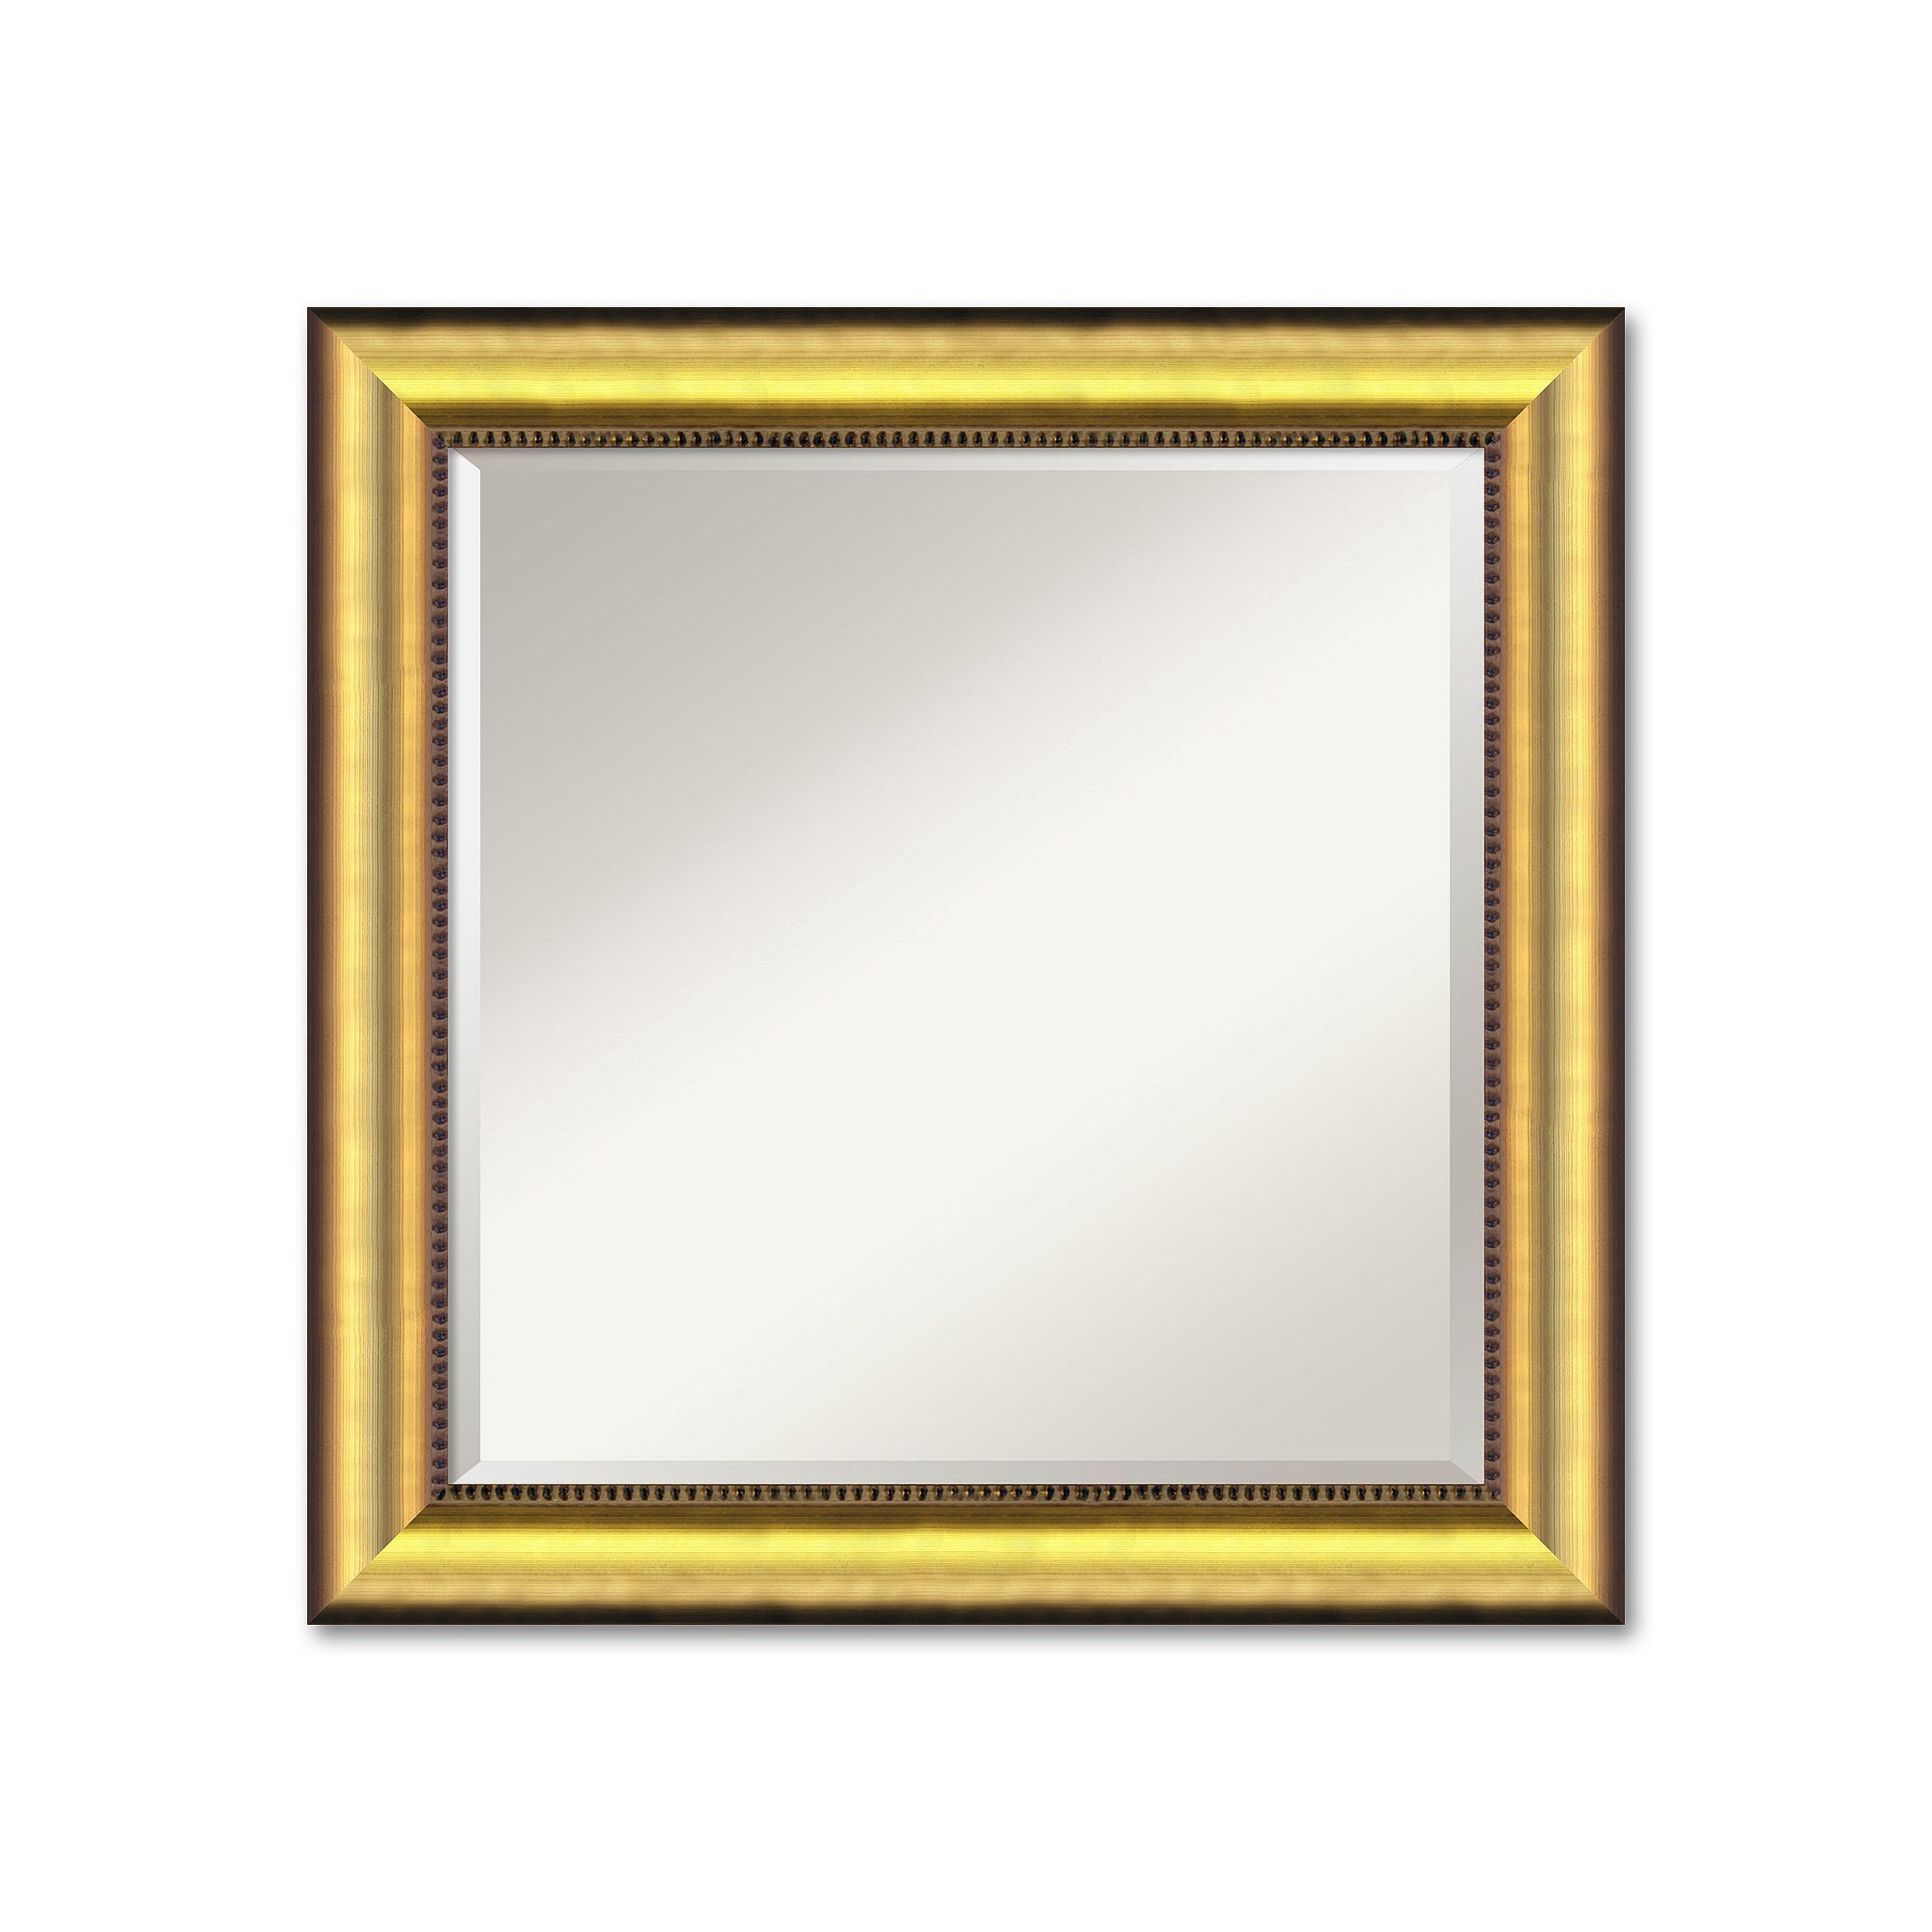 Vegas Medium Burnished Gold Tone Traditional Wood Wall Intended For Traditional Square Glass Wall Mirrors (Image 18 of 20)